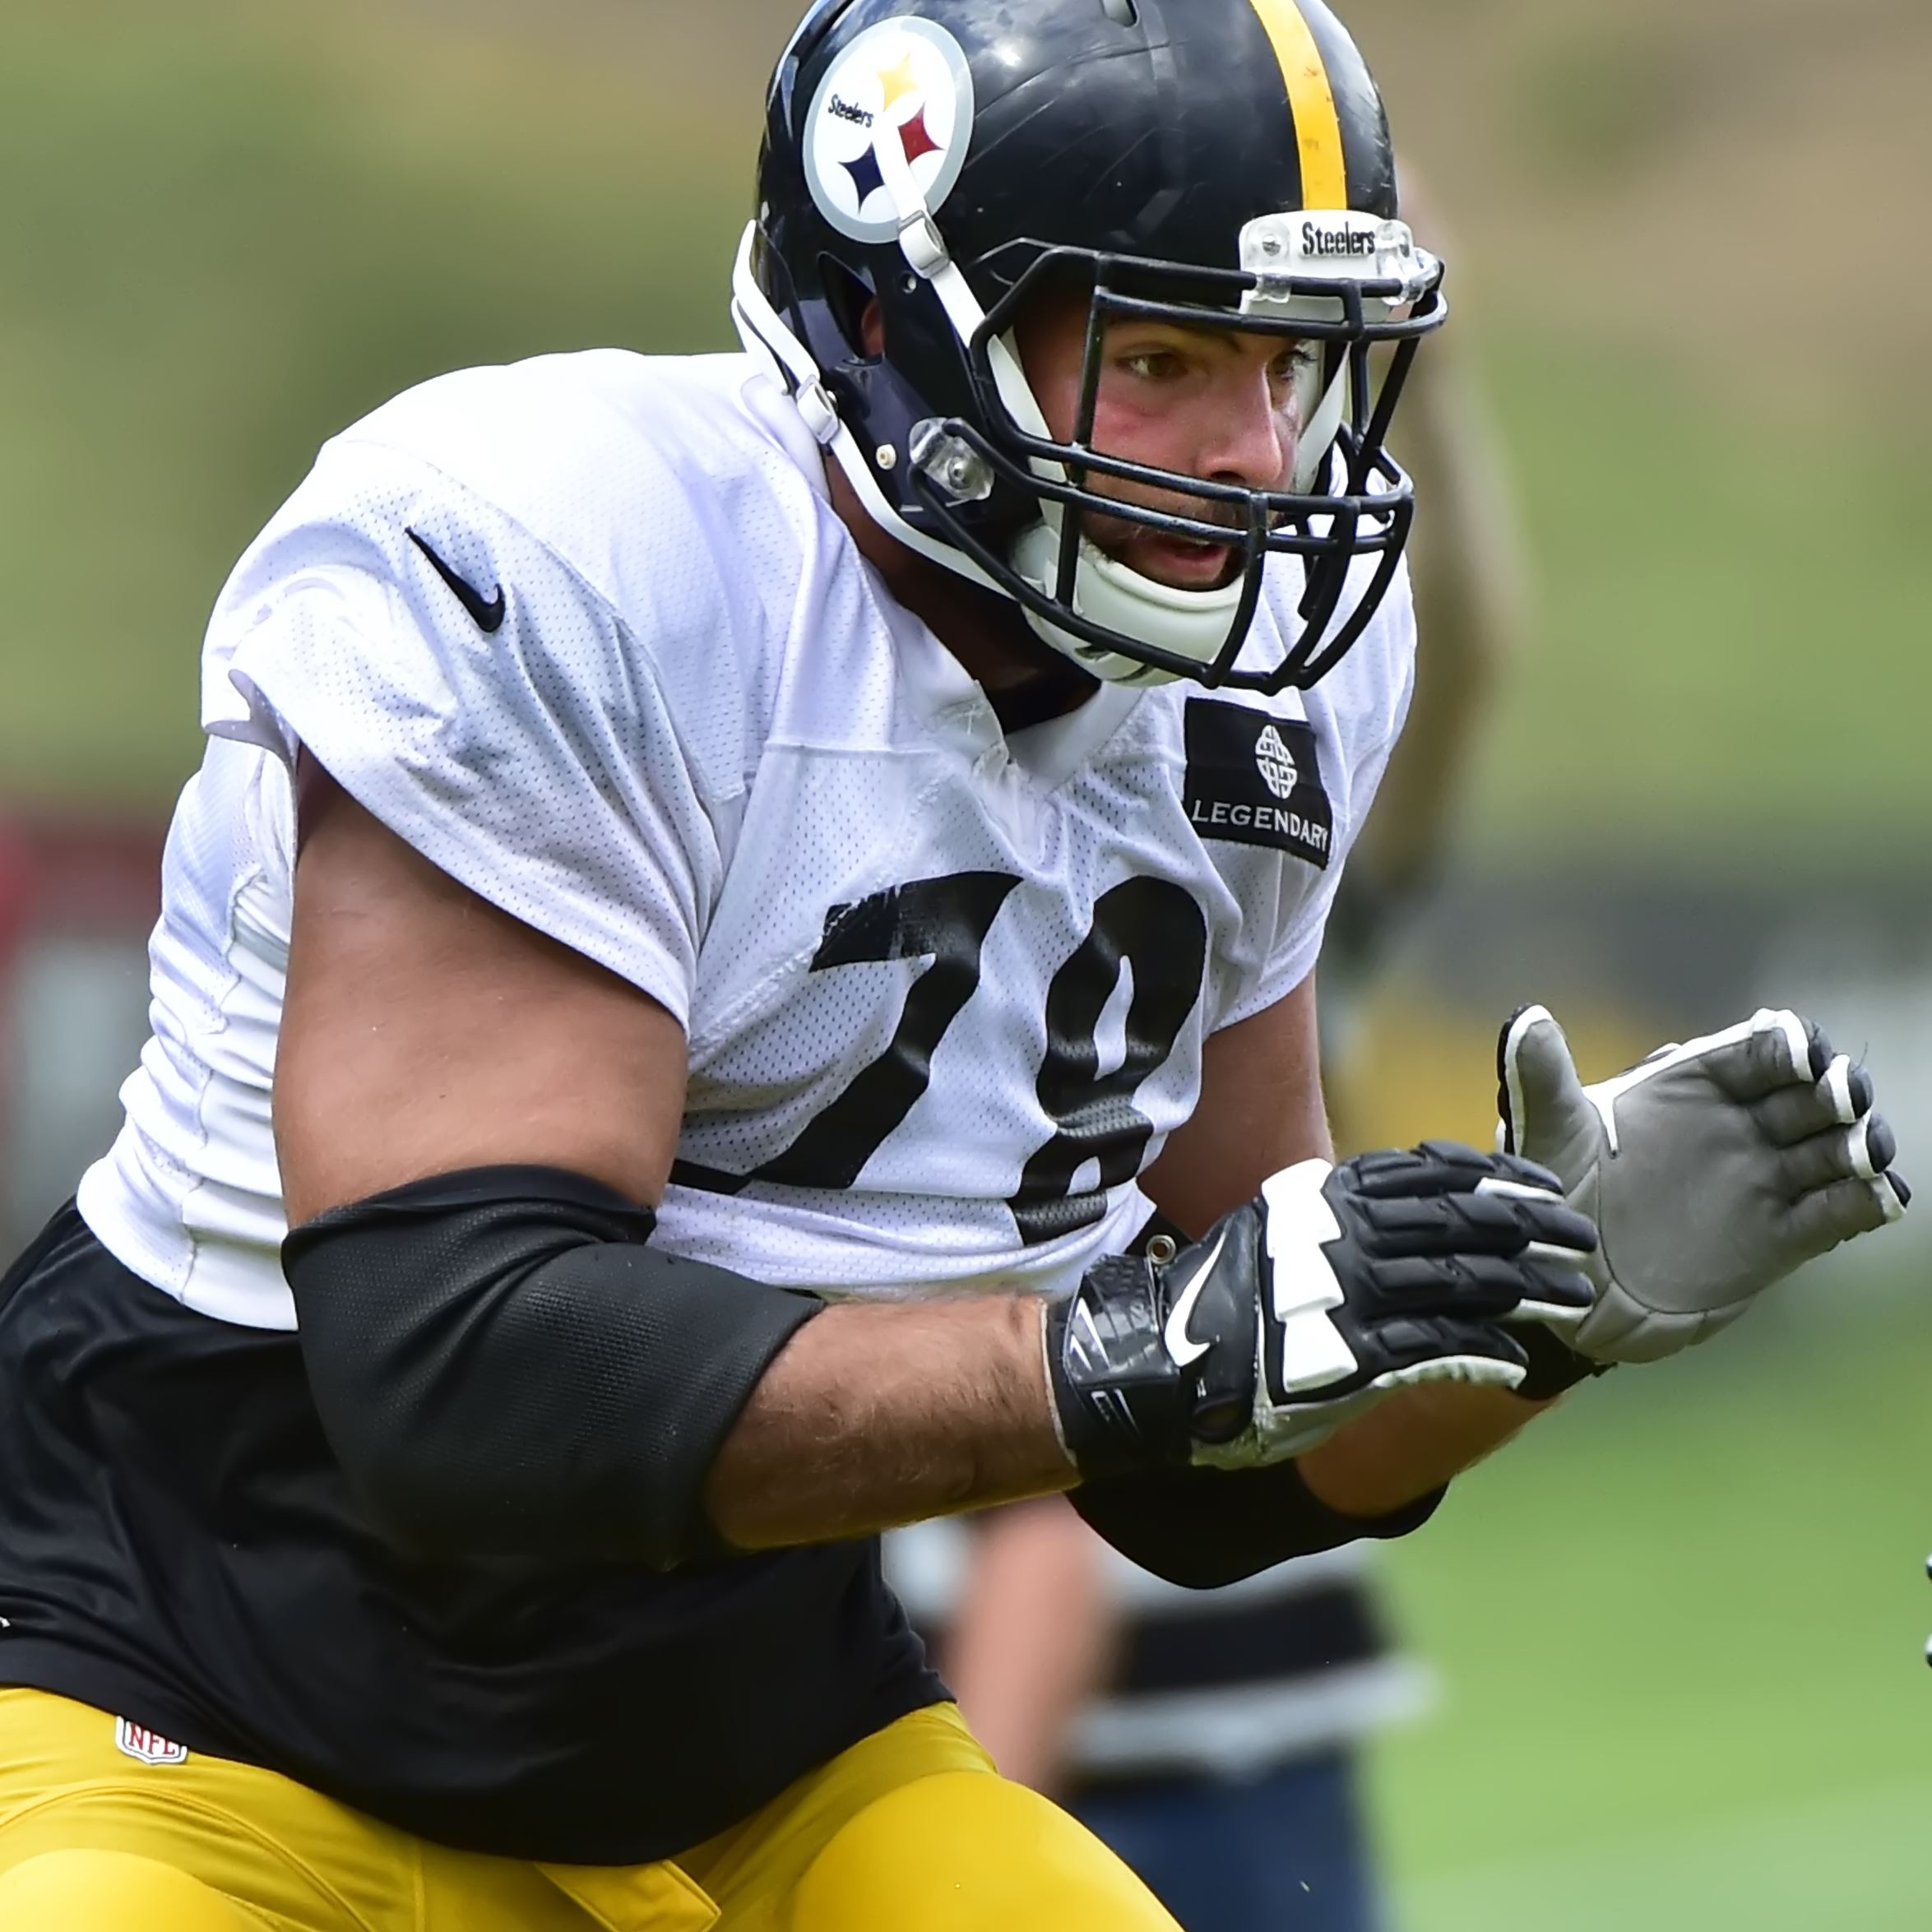 Steelers tackle Villanueva trying not to think too much